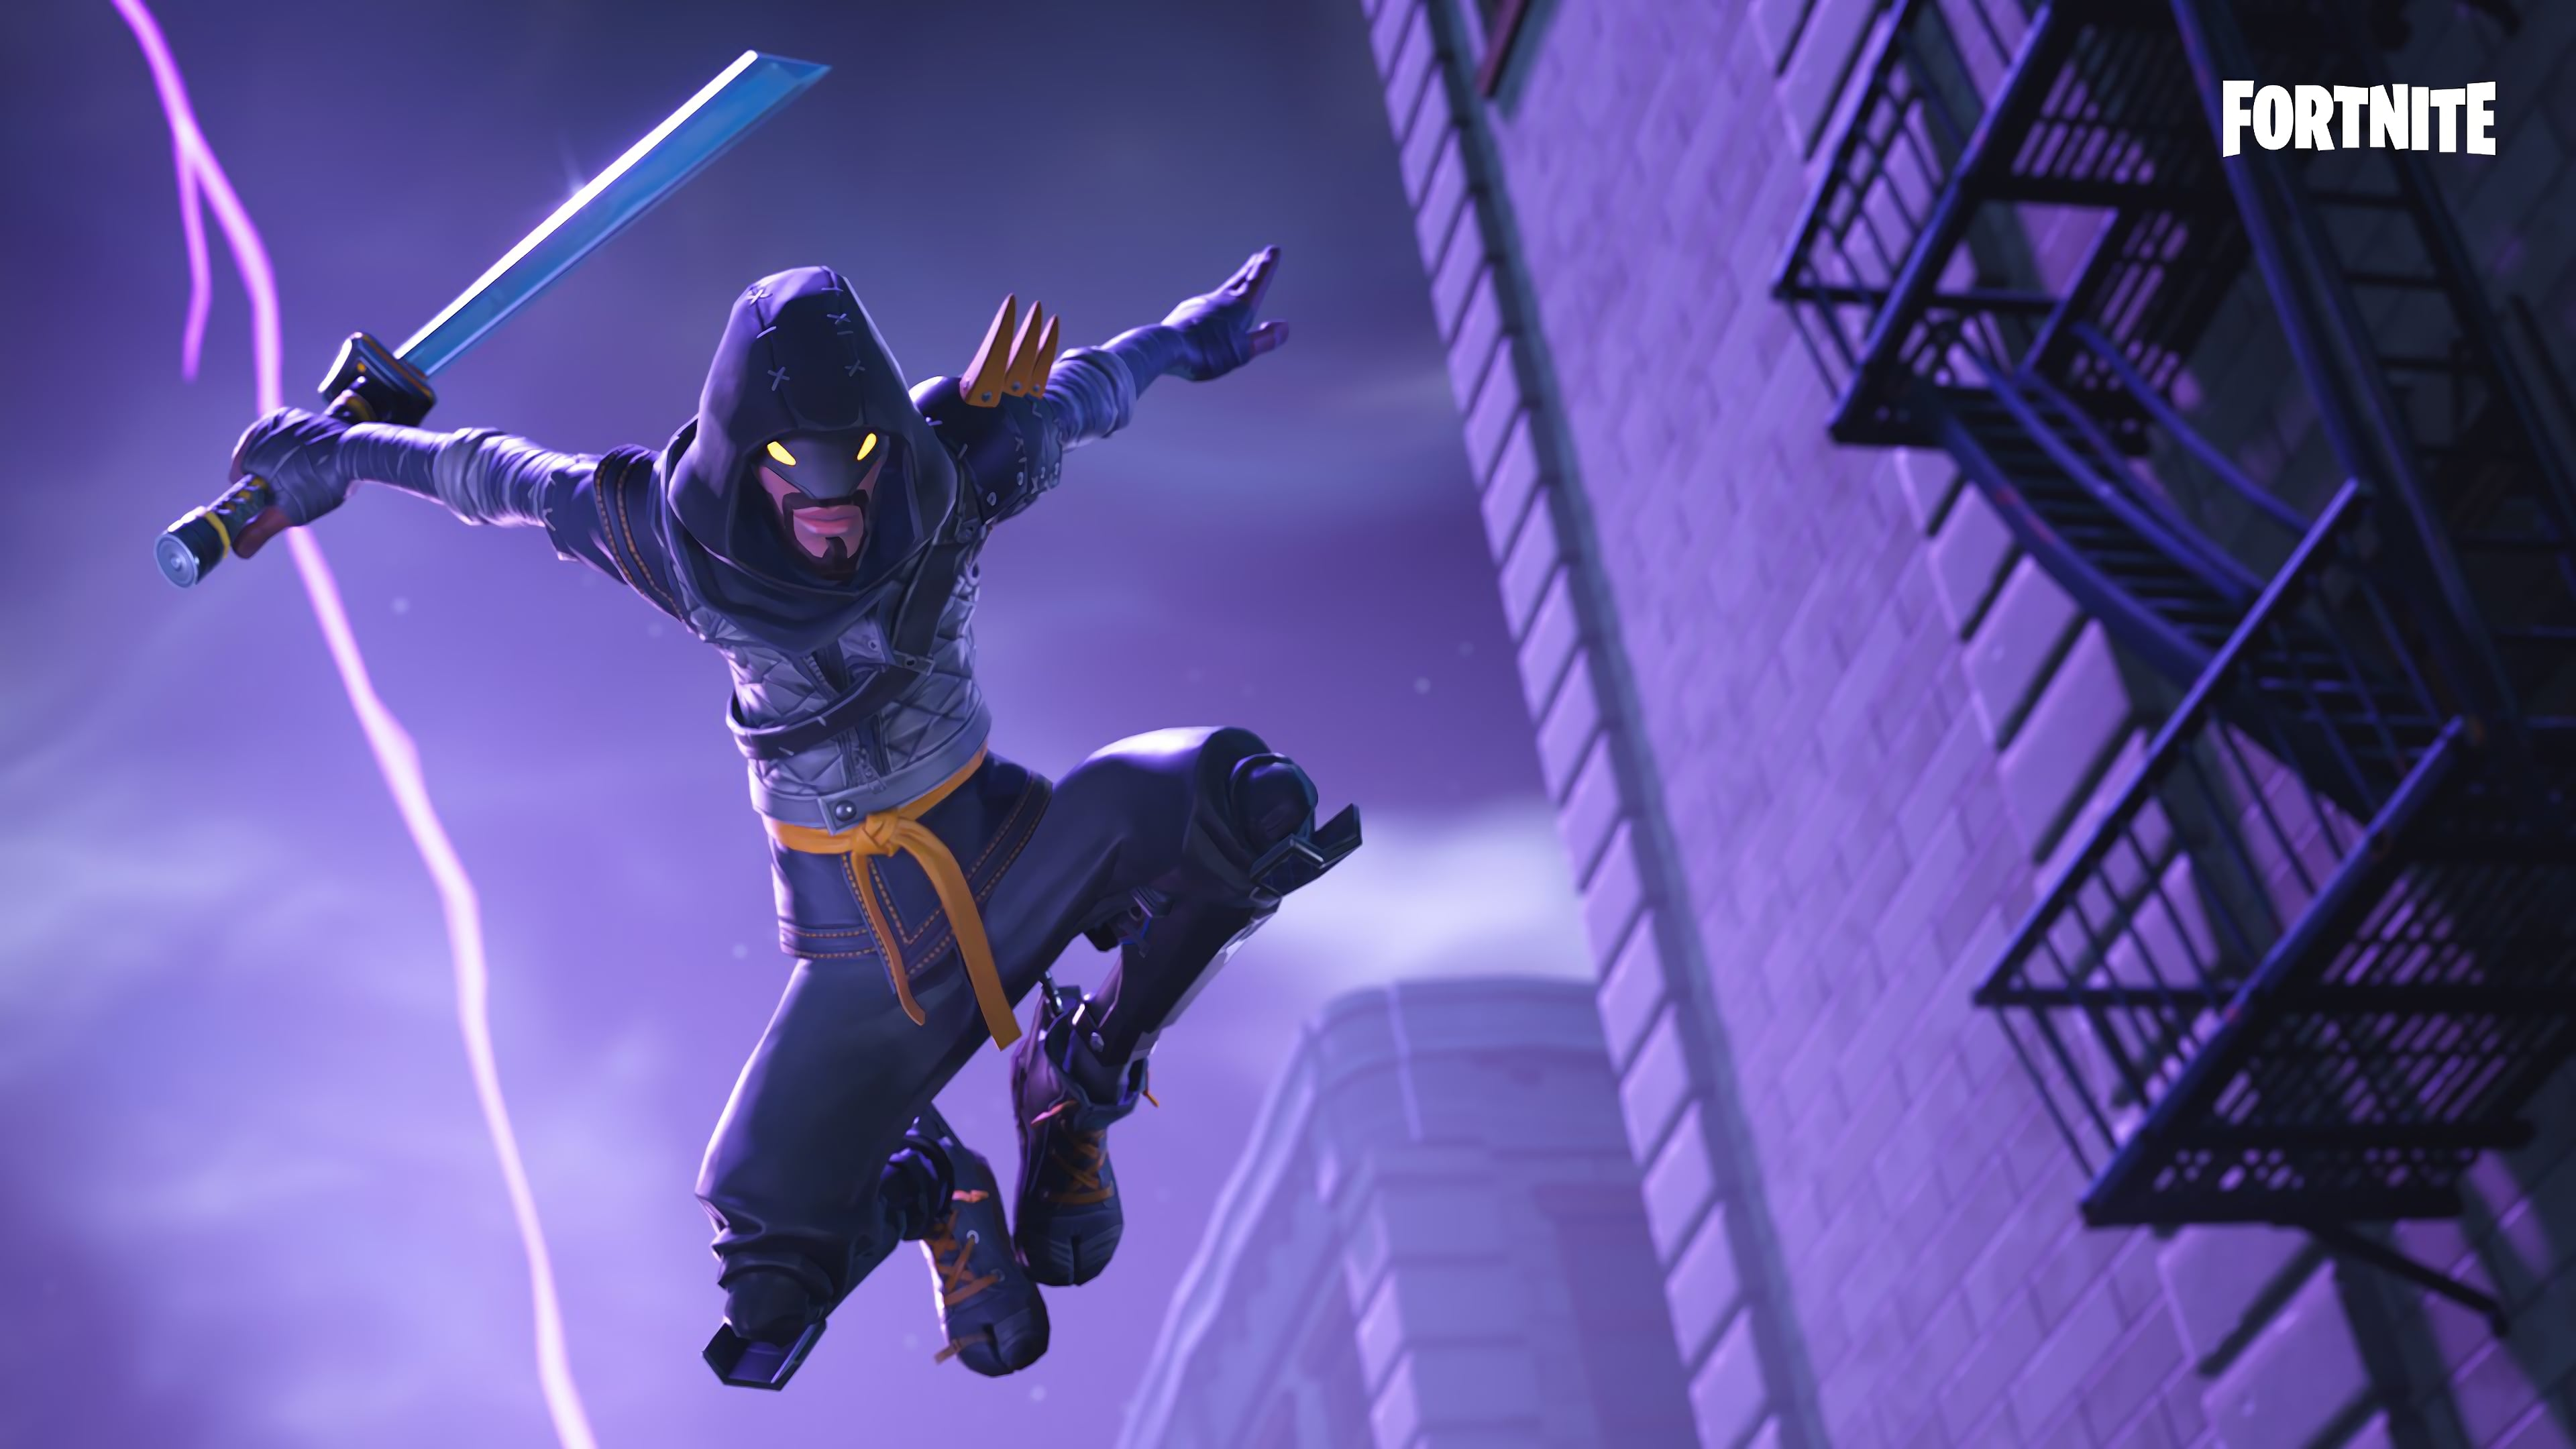 Fortntie Background Posted By Ethan Anderson Ninja broke the twitch streaming record twice. fortntie background posted by ethan